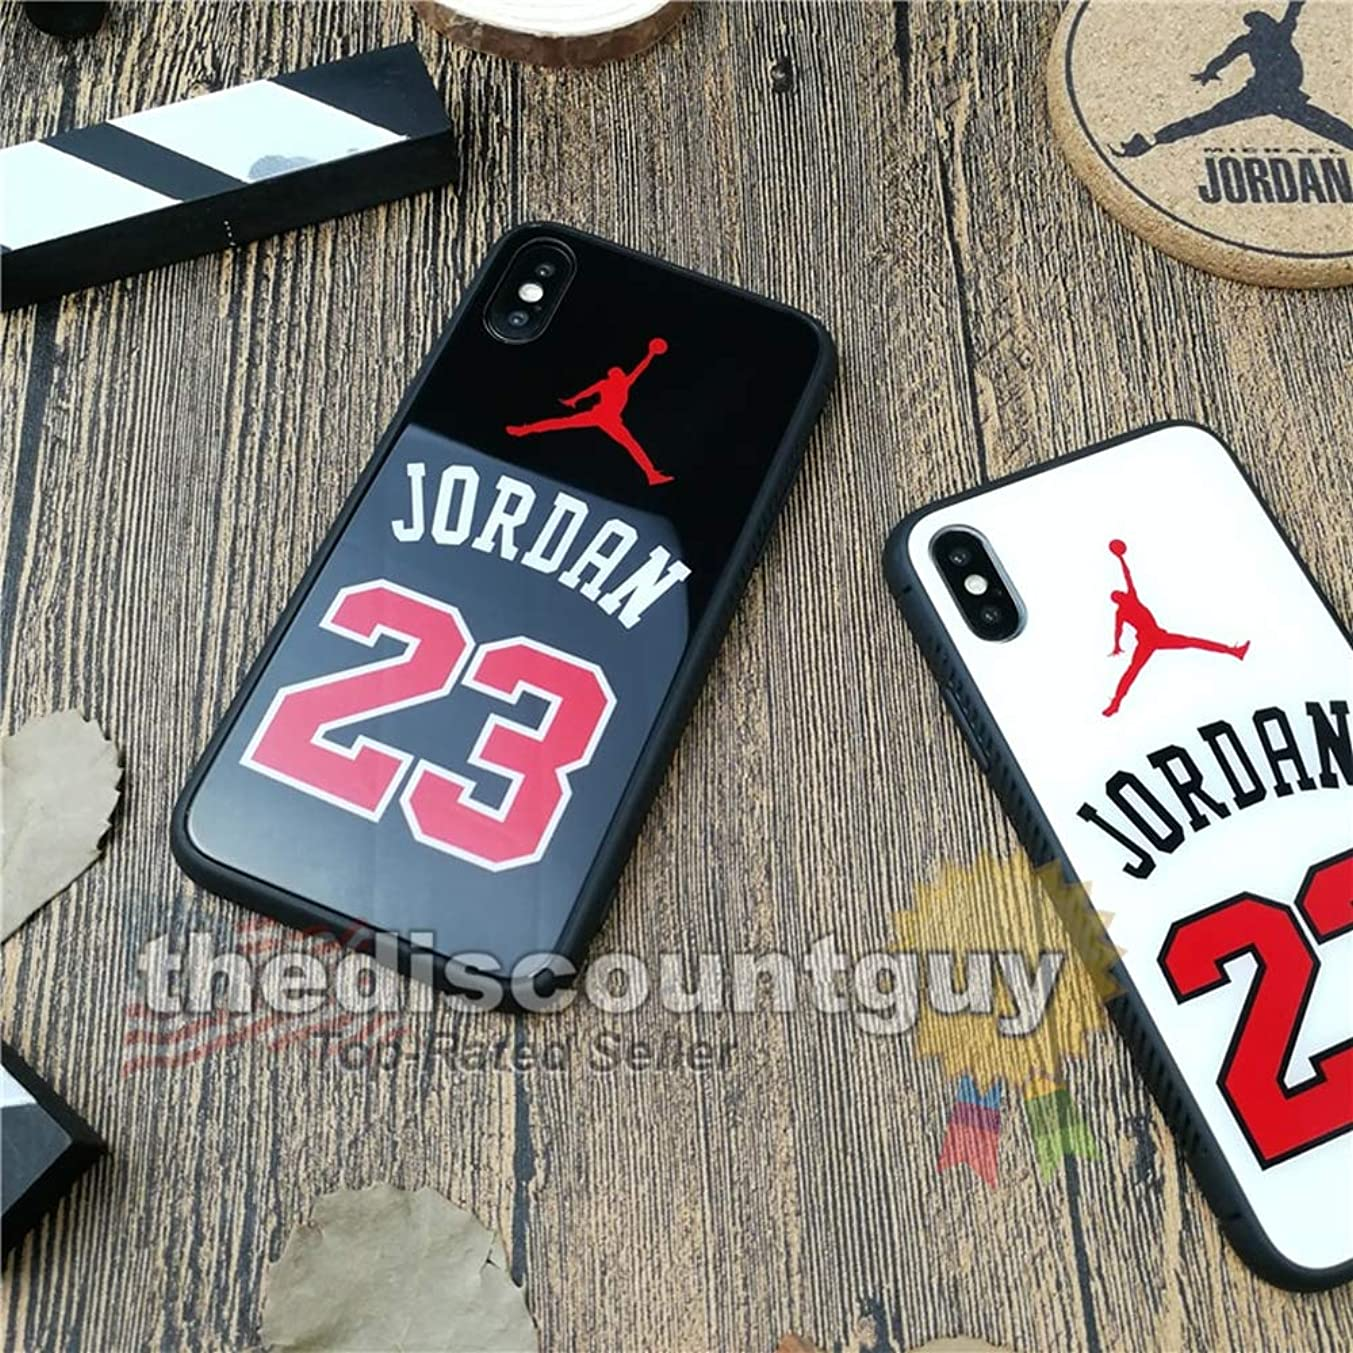 iPhone 8 Plus - Tempered Glass Jordan Phone Case Shiny Smooth Scratch Resistant Silicone Protective Shell Basketball Mirror Black Red White Glossy Cover (Black)